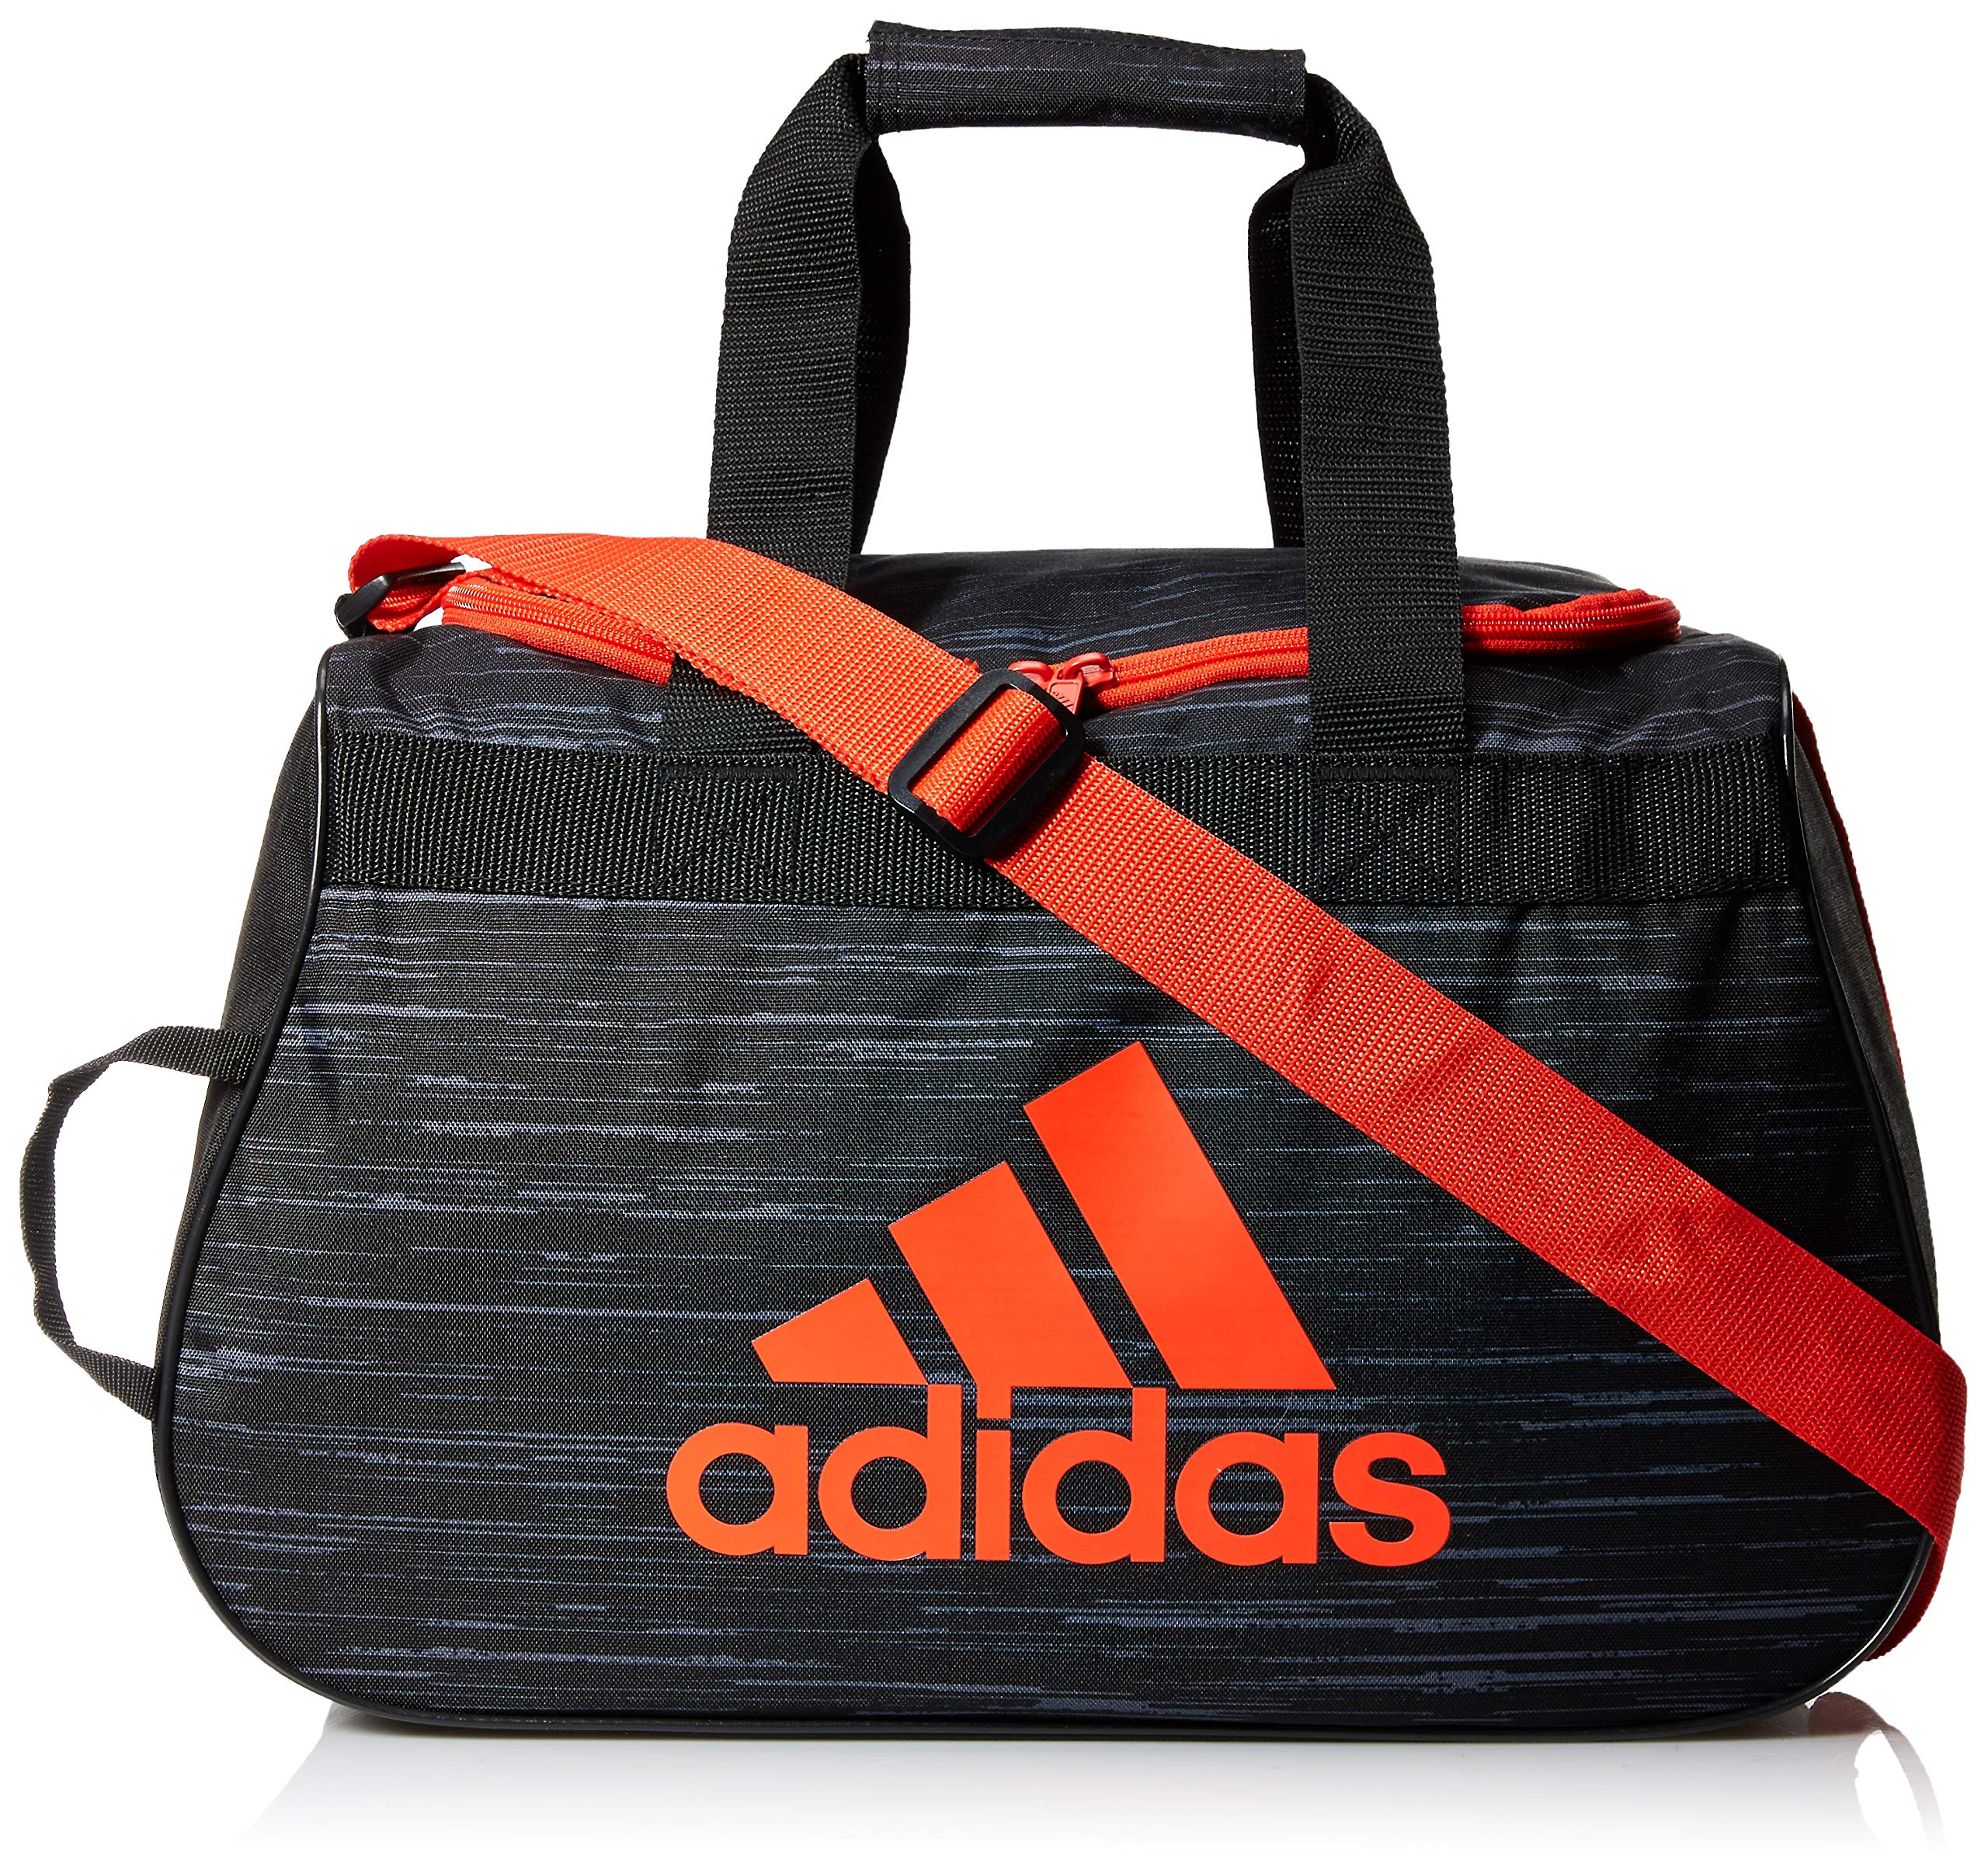 adidas Diablo Duffel Bag, Black Looper/Hi-Res Red/Black, One Size